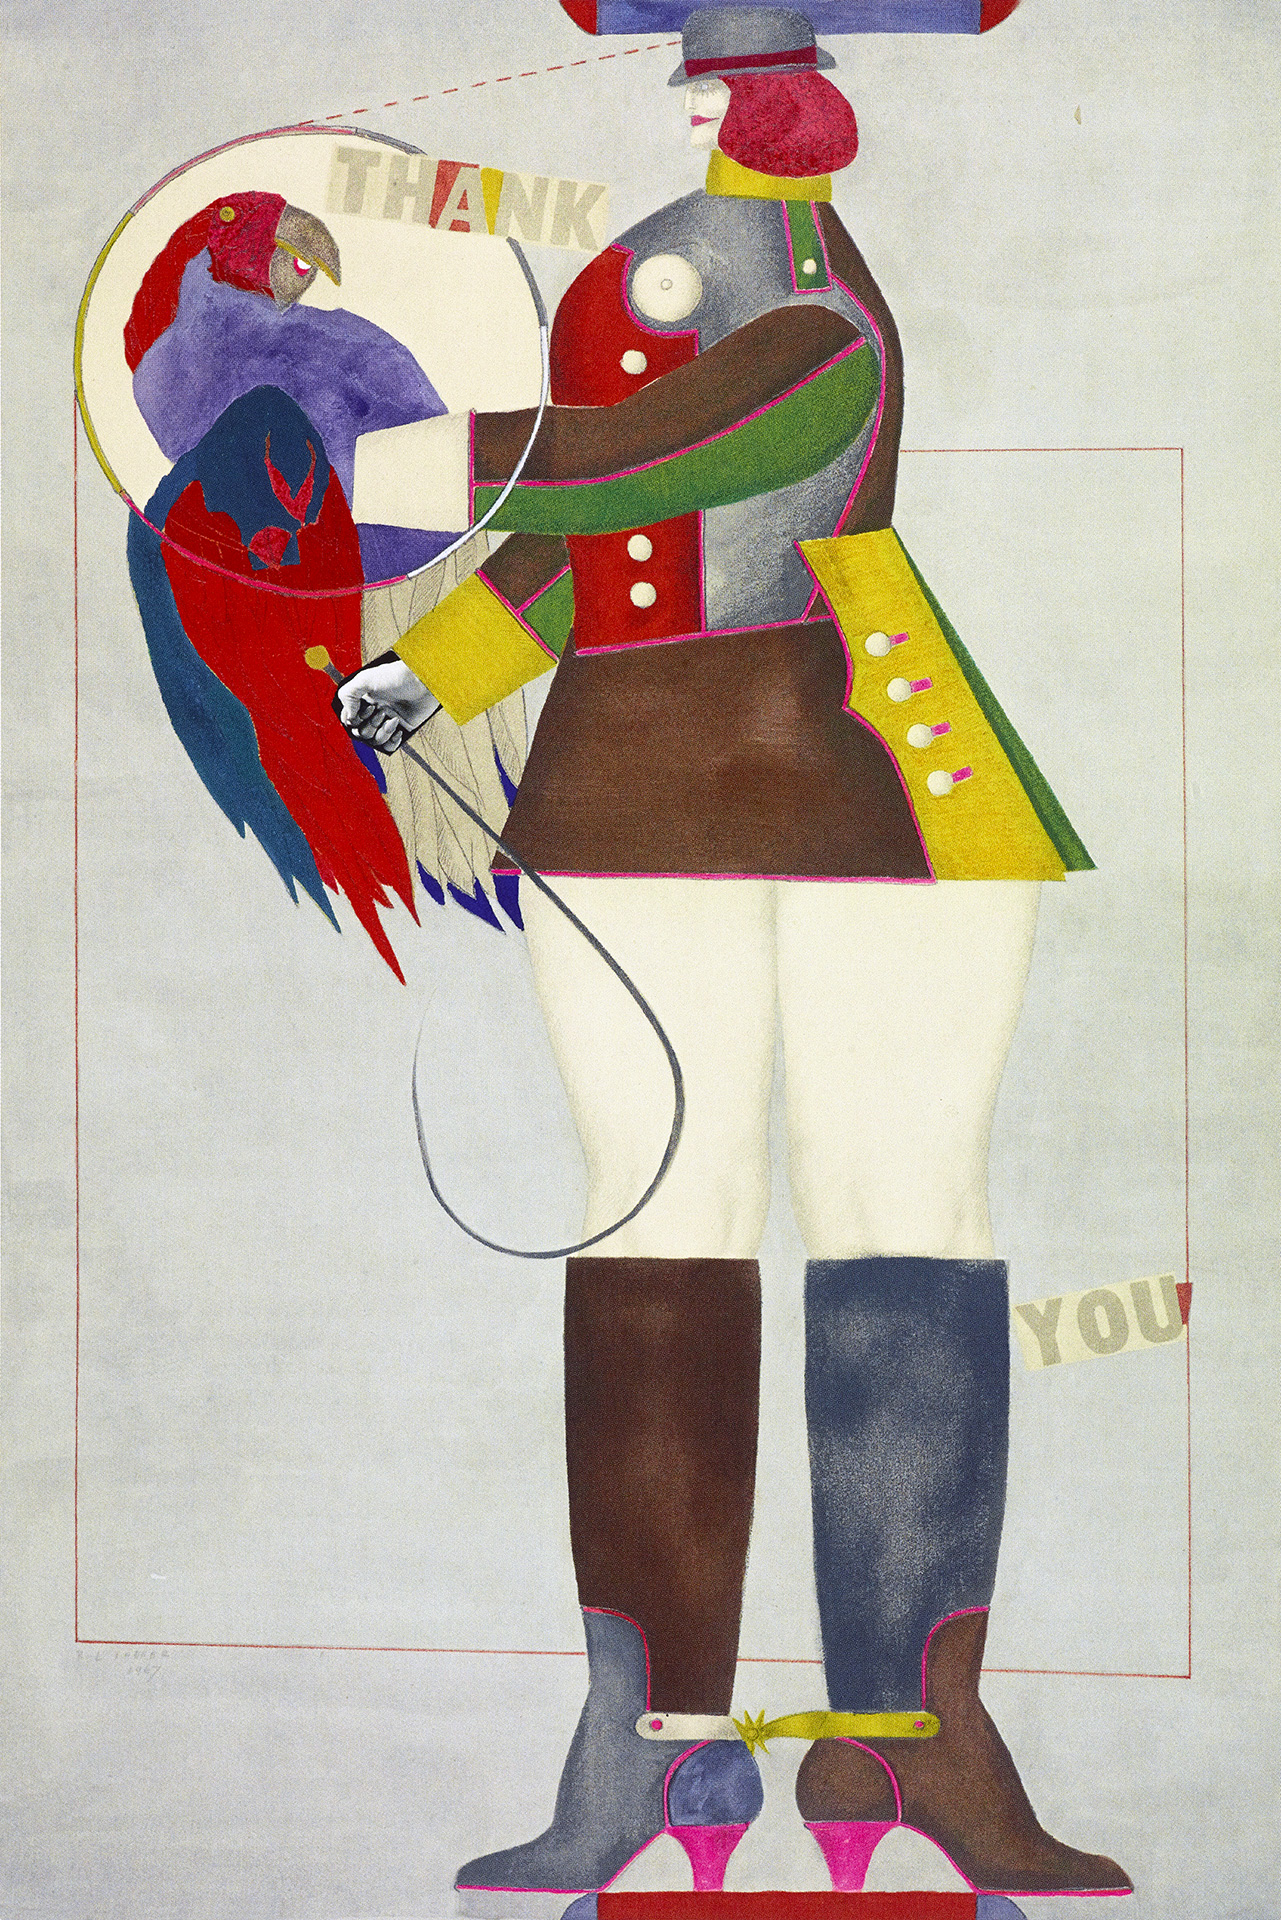 Thank you (Woman with Parrot), 1967